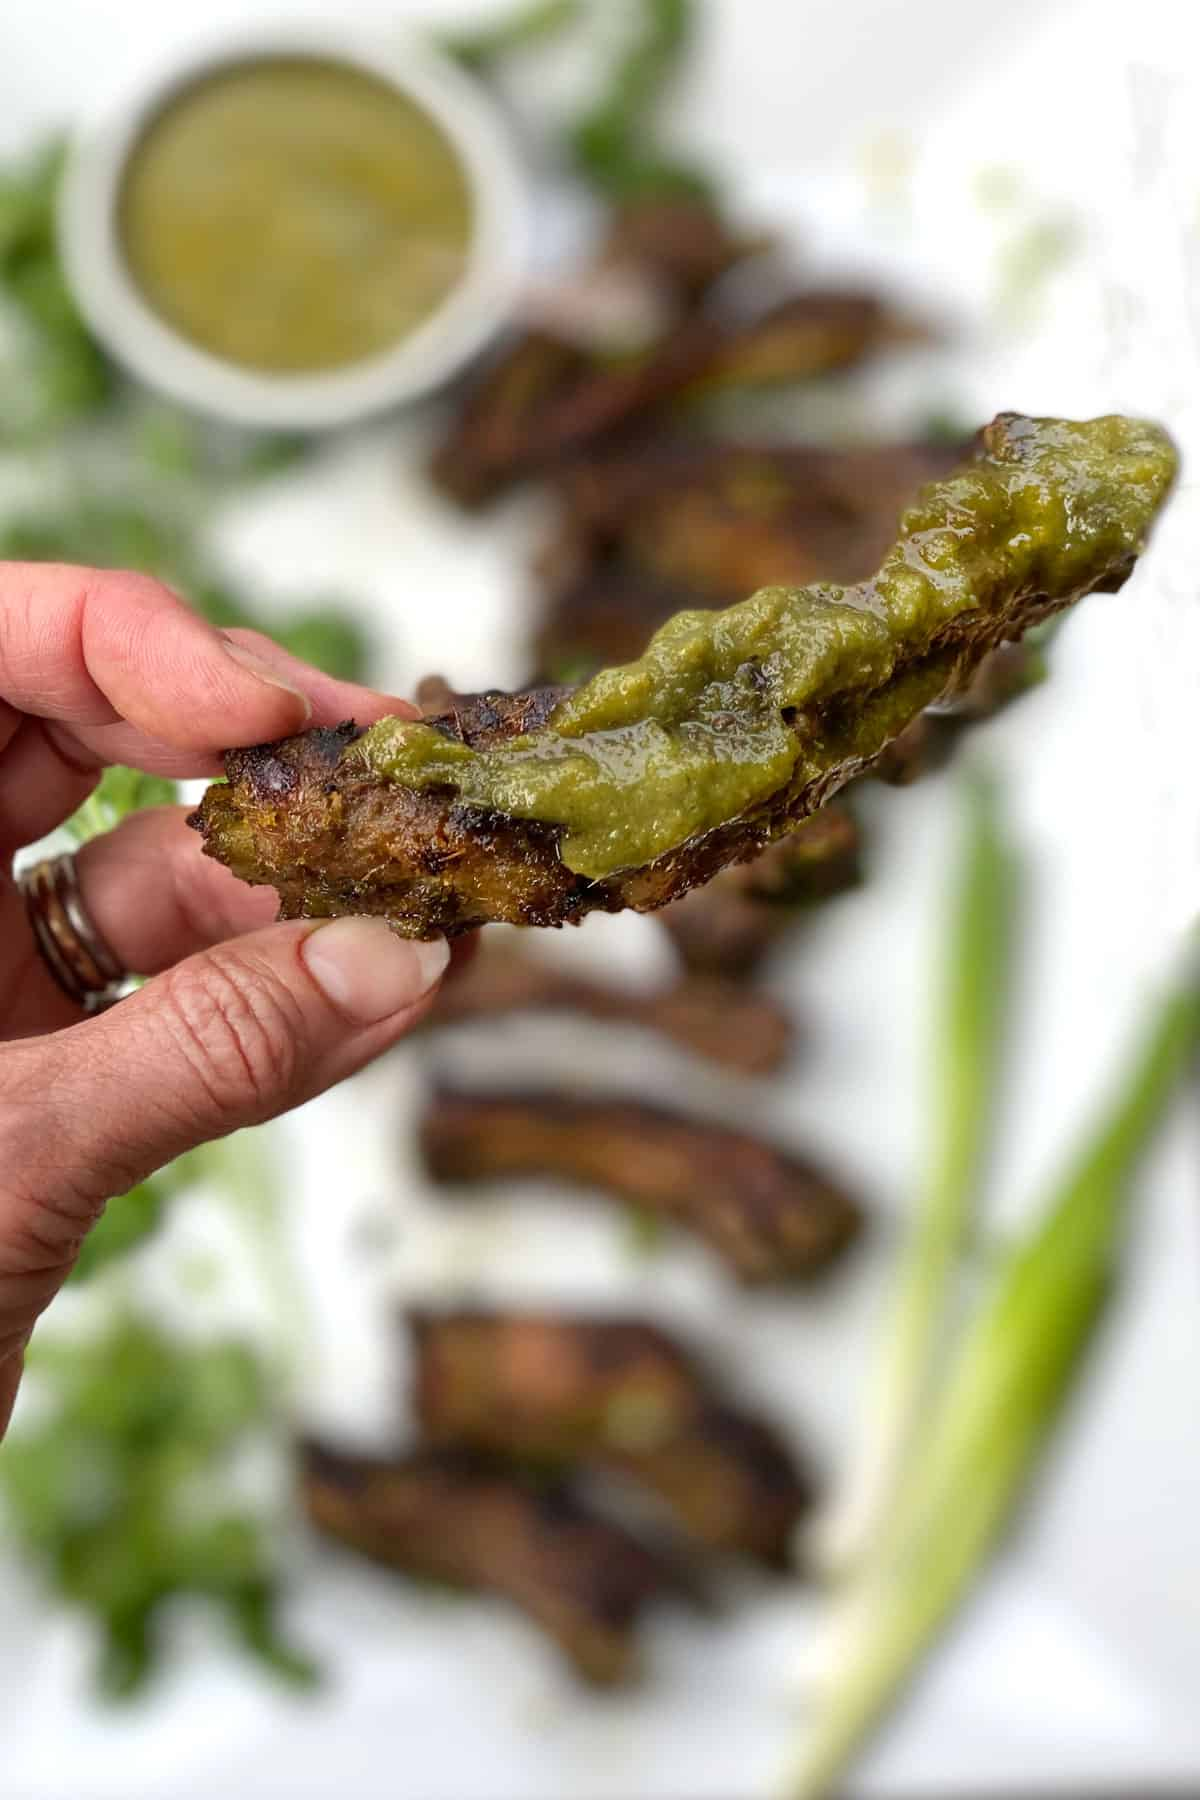 fingers holding one Thai BBQ rib coated with green bbq sauce, a platter of ribs in the background